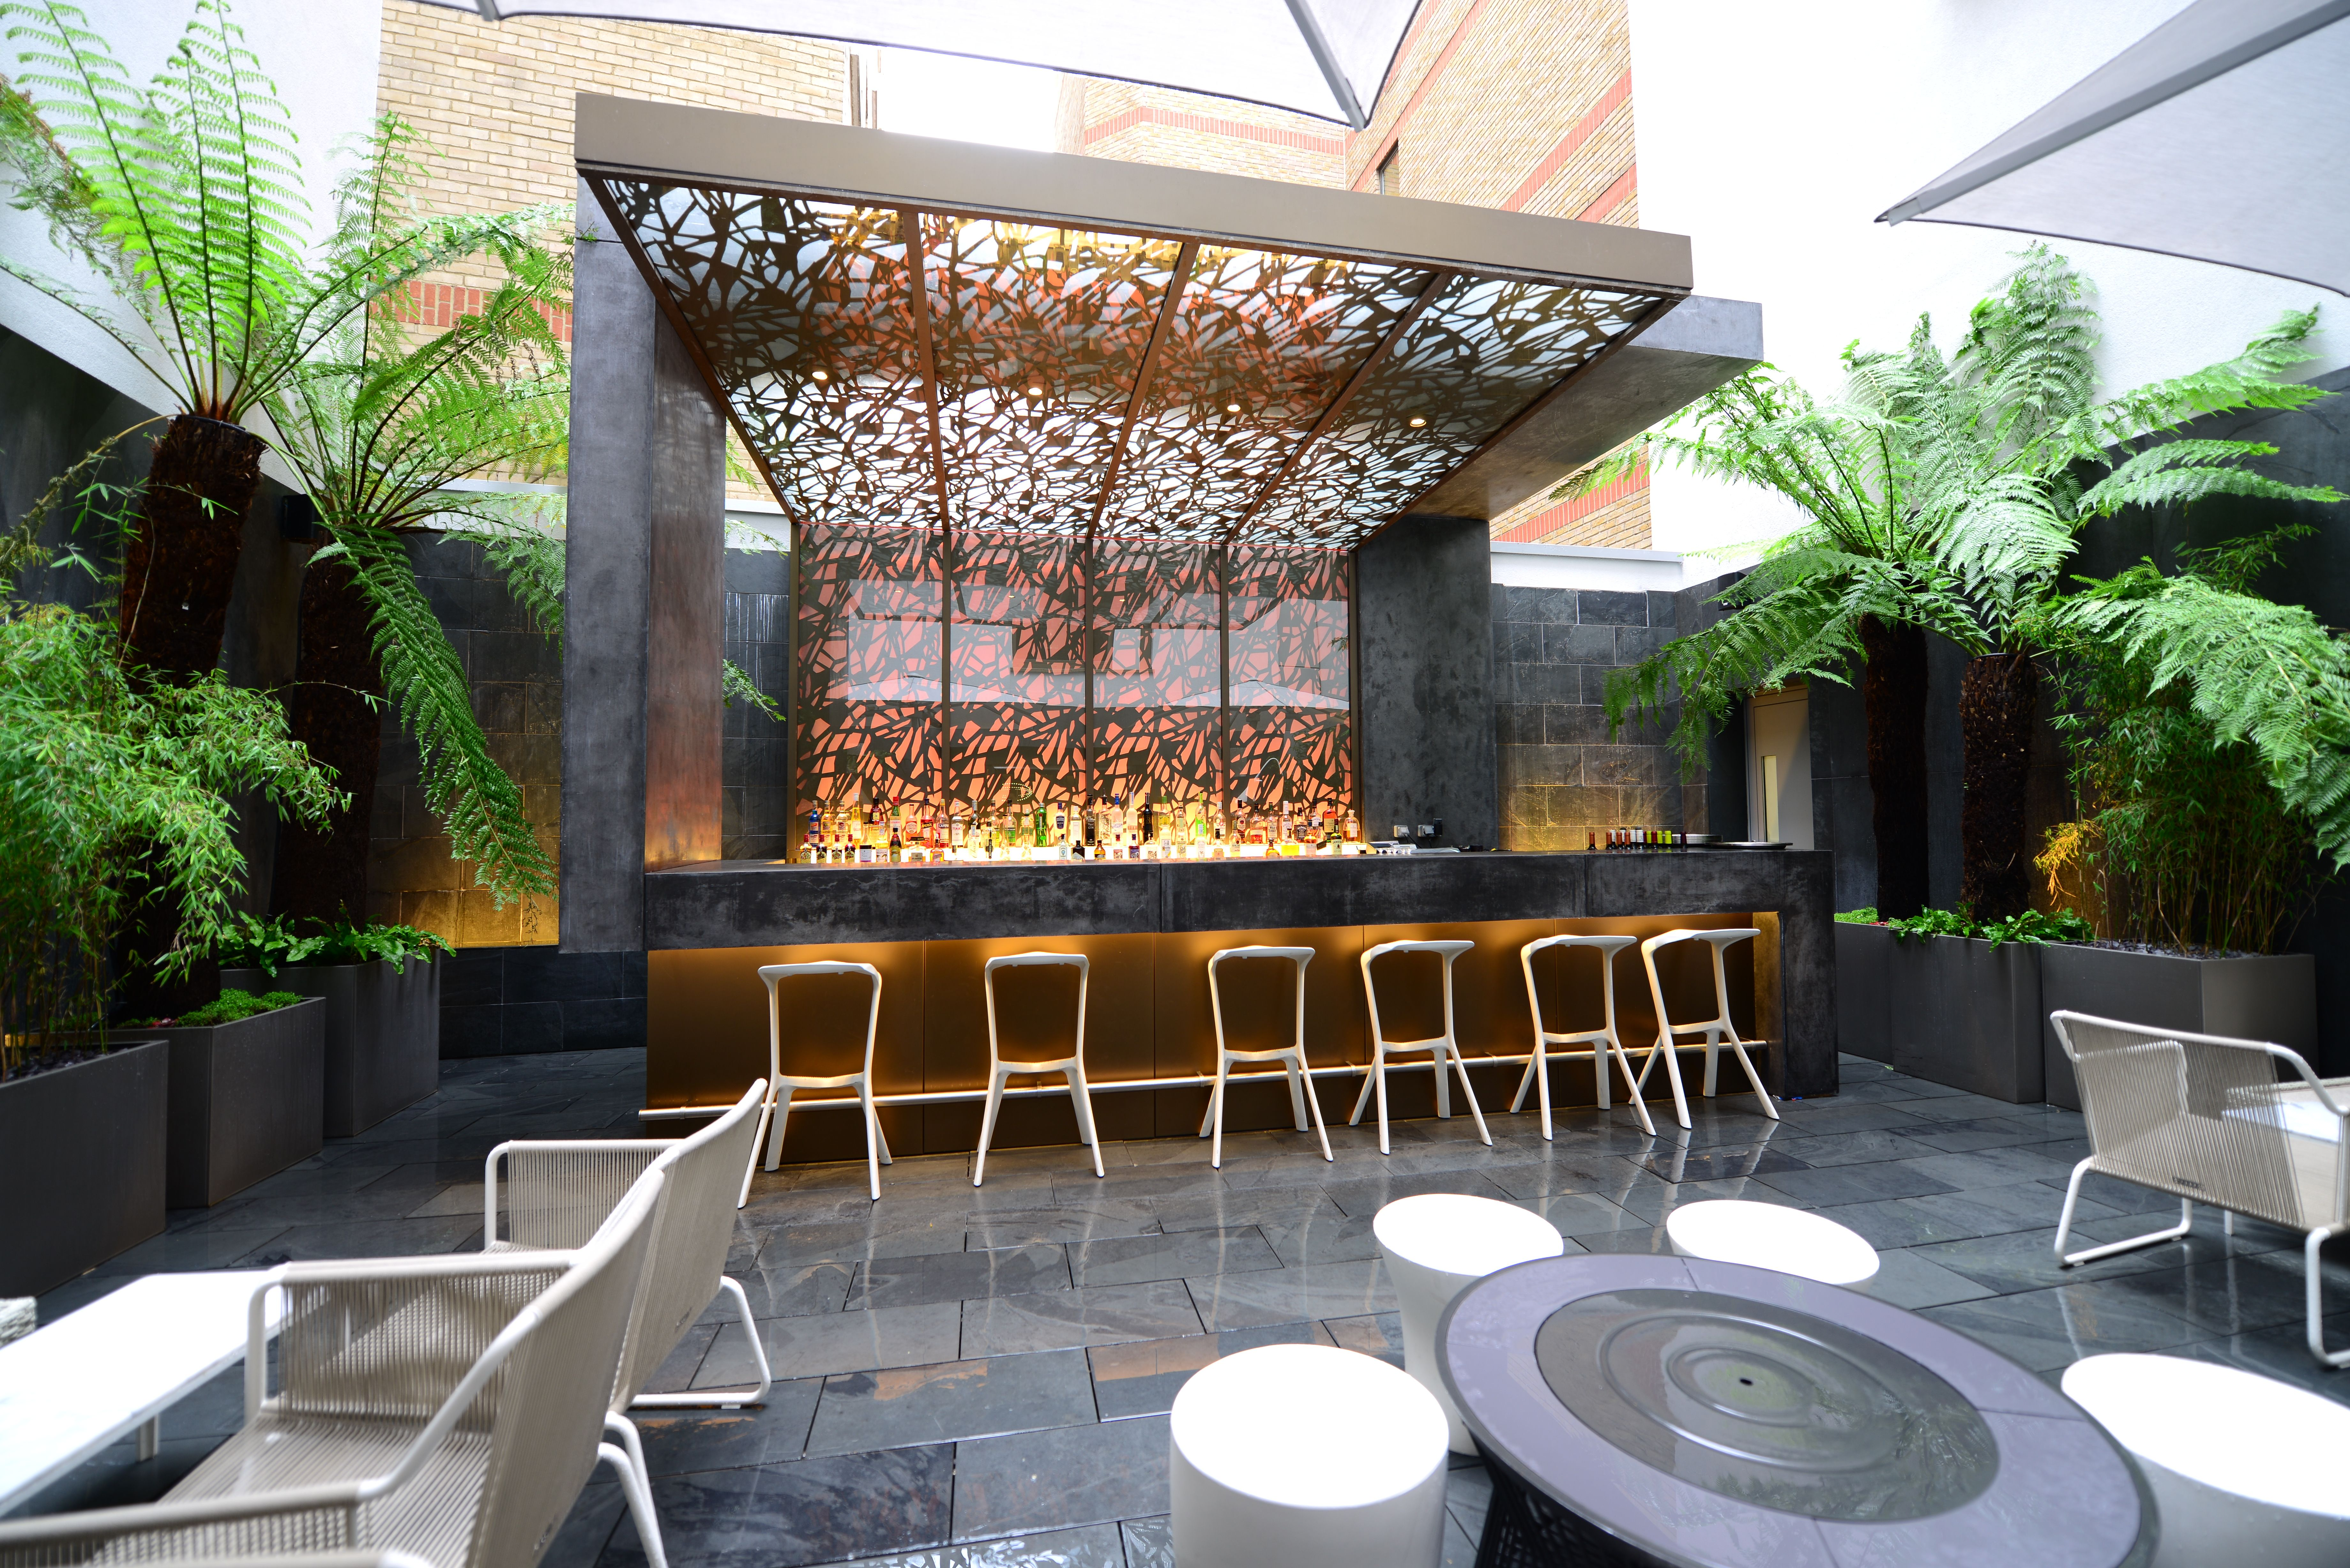 the grand south place hotel courtyard bar complete with. Black Bedroom Furniture Sets. Home Design Ideas